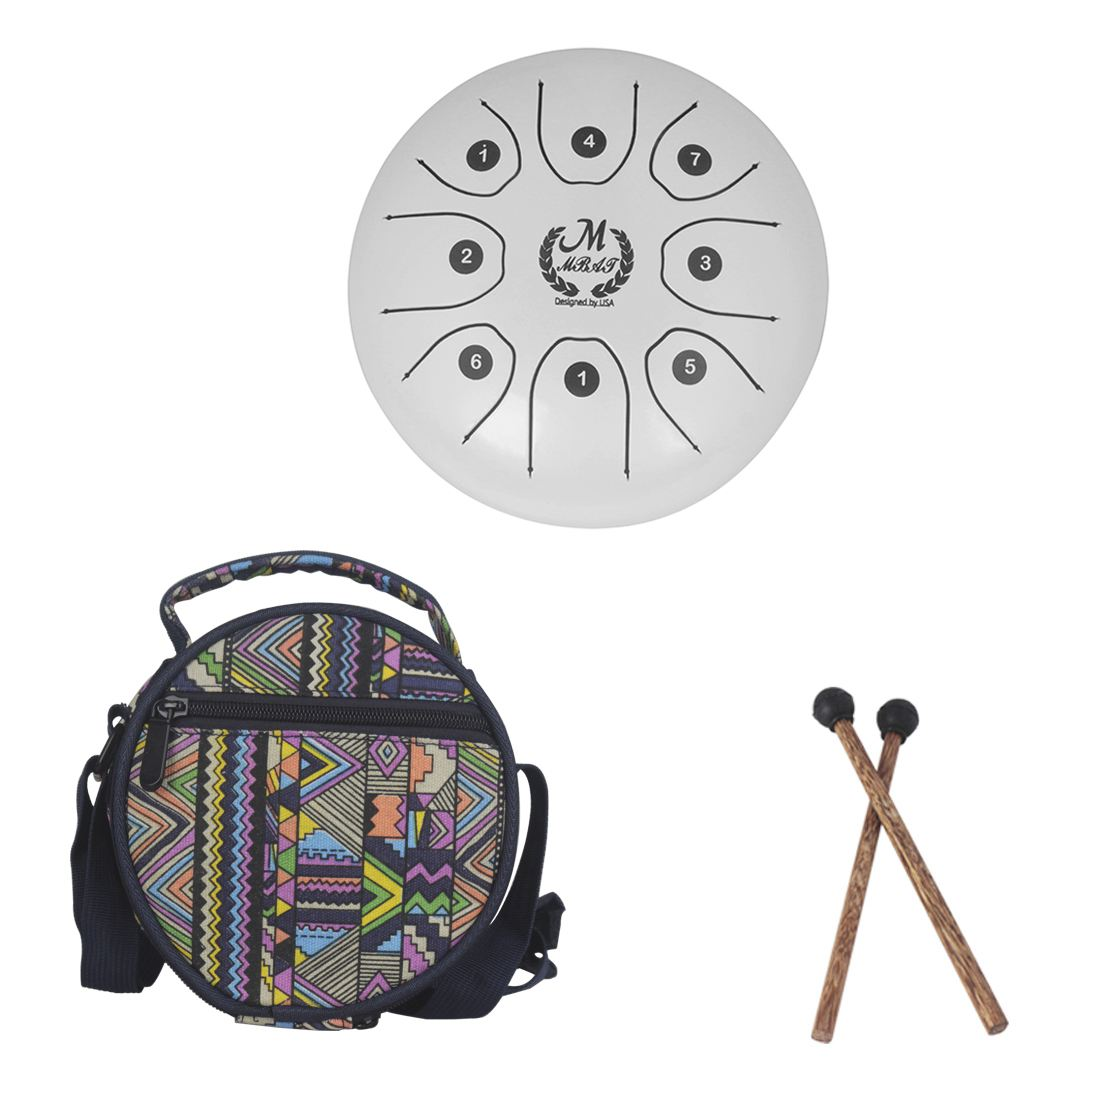 MMBAT 5.5 inch small size steel tongue drum with C D E F G A B C 8 notes with free case and rubber mallets for children instruMMBAT 5.5 inch small size steel tongue drum with C D E F G A B C 8 notes with free case and rubber mallets for children instru